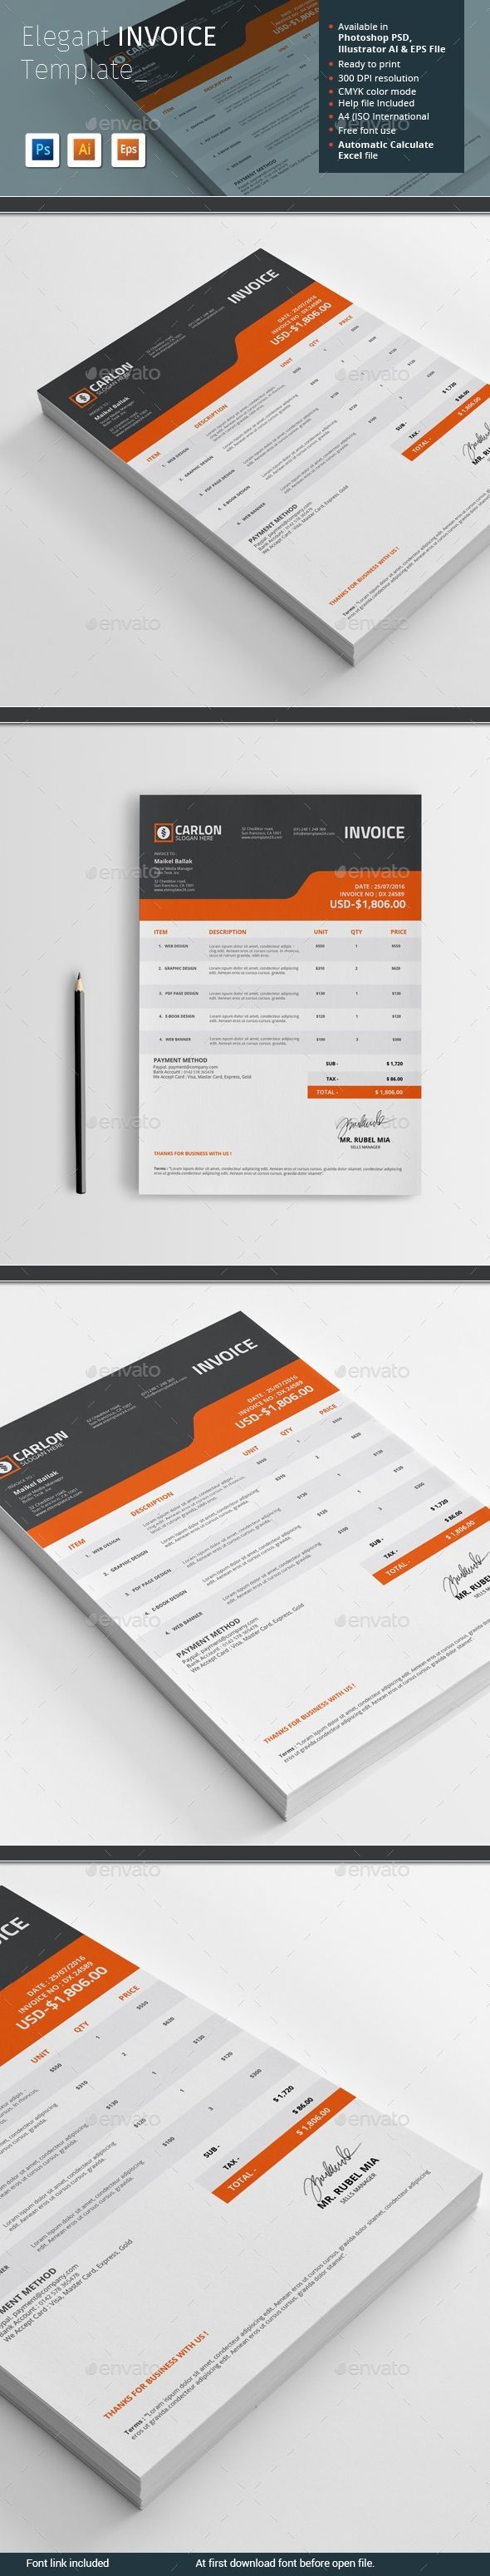 1000 ideas about invoice template on pinterest project proposal invoice template ai